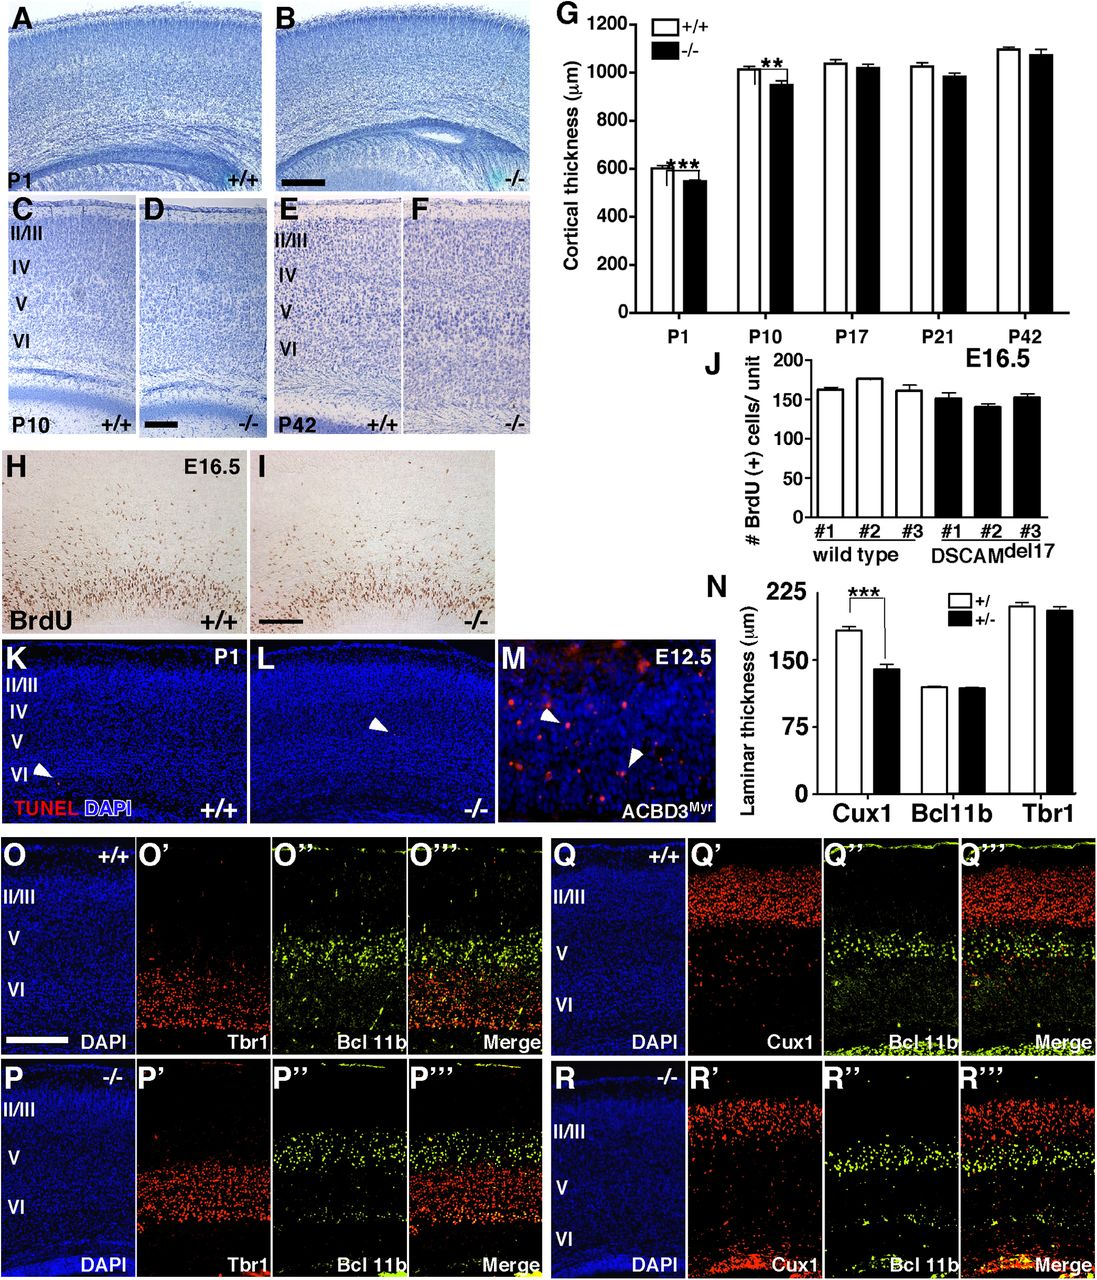 DSCAM Contributes to Dendrite Arborization and Spine Formation in